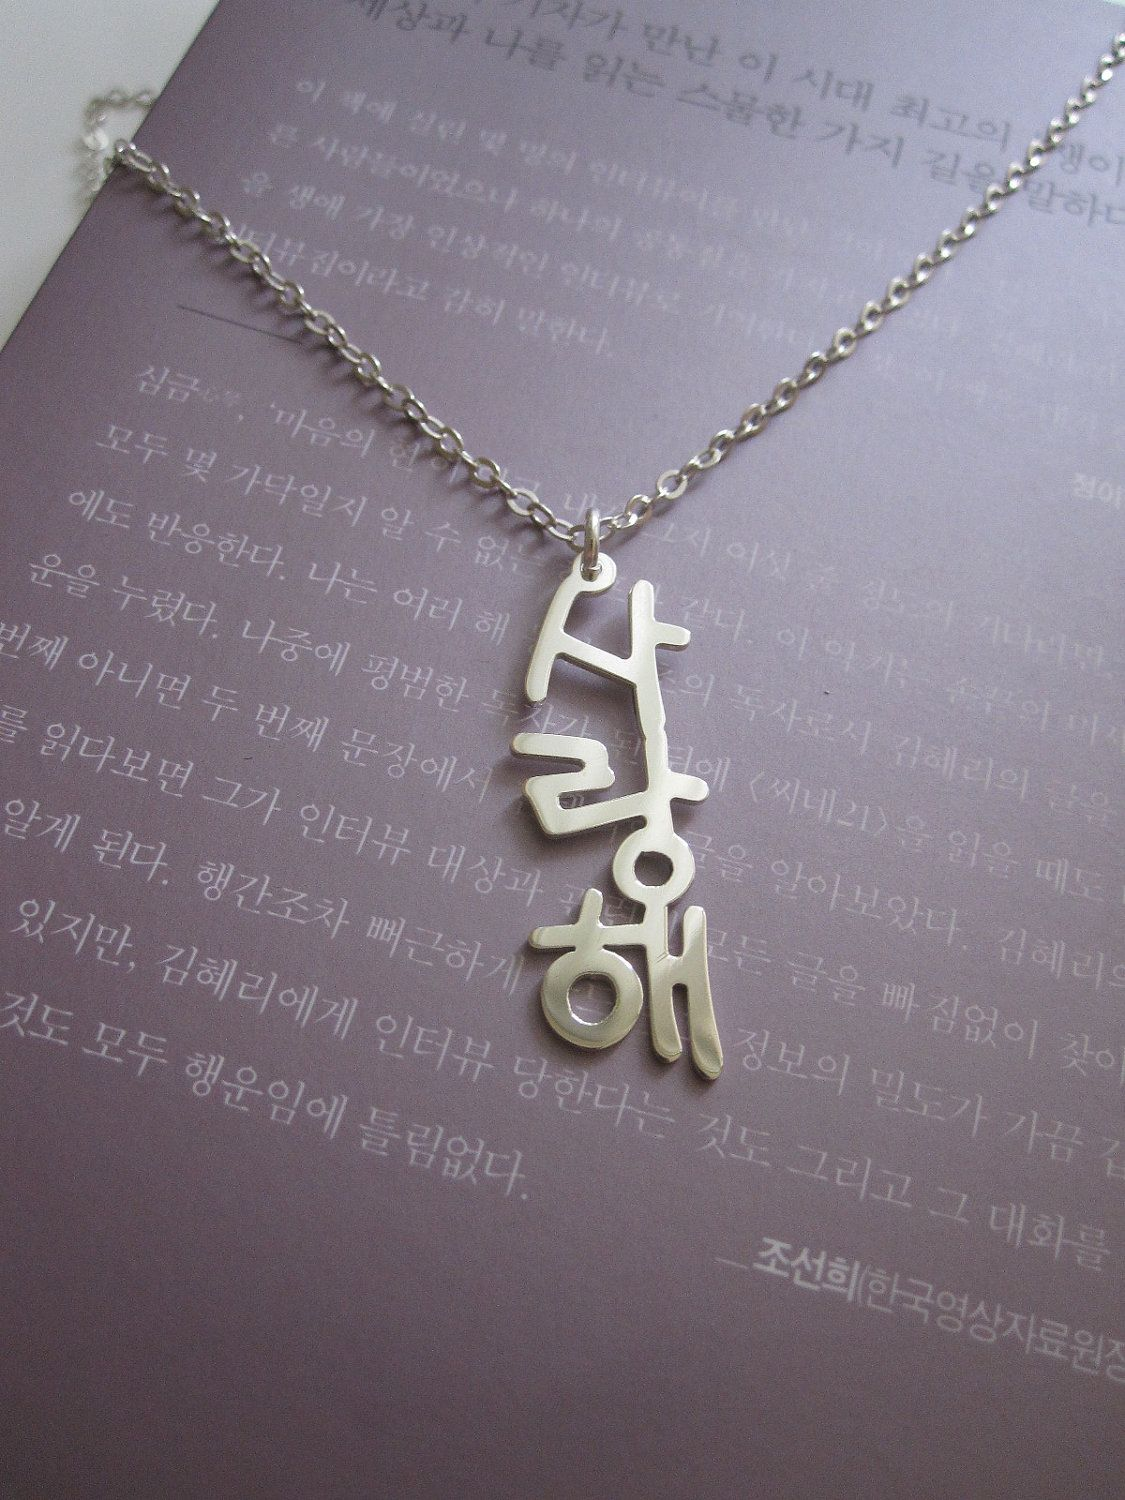 0f486b37d2 Personalized Sterling Silver Vertical Korean Name Necklace. $29.00, via  Etsy.